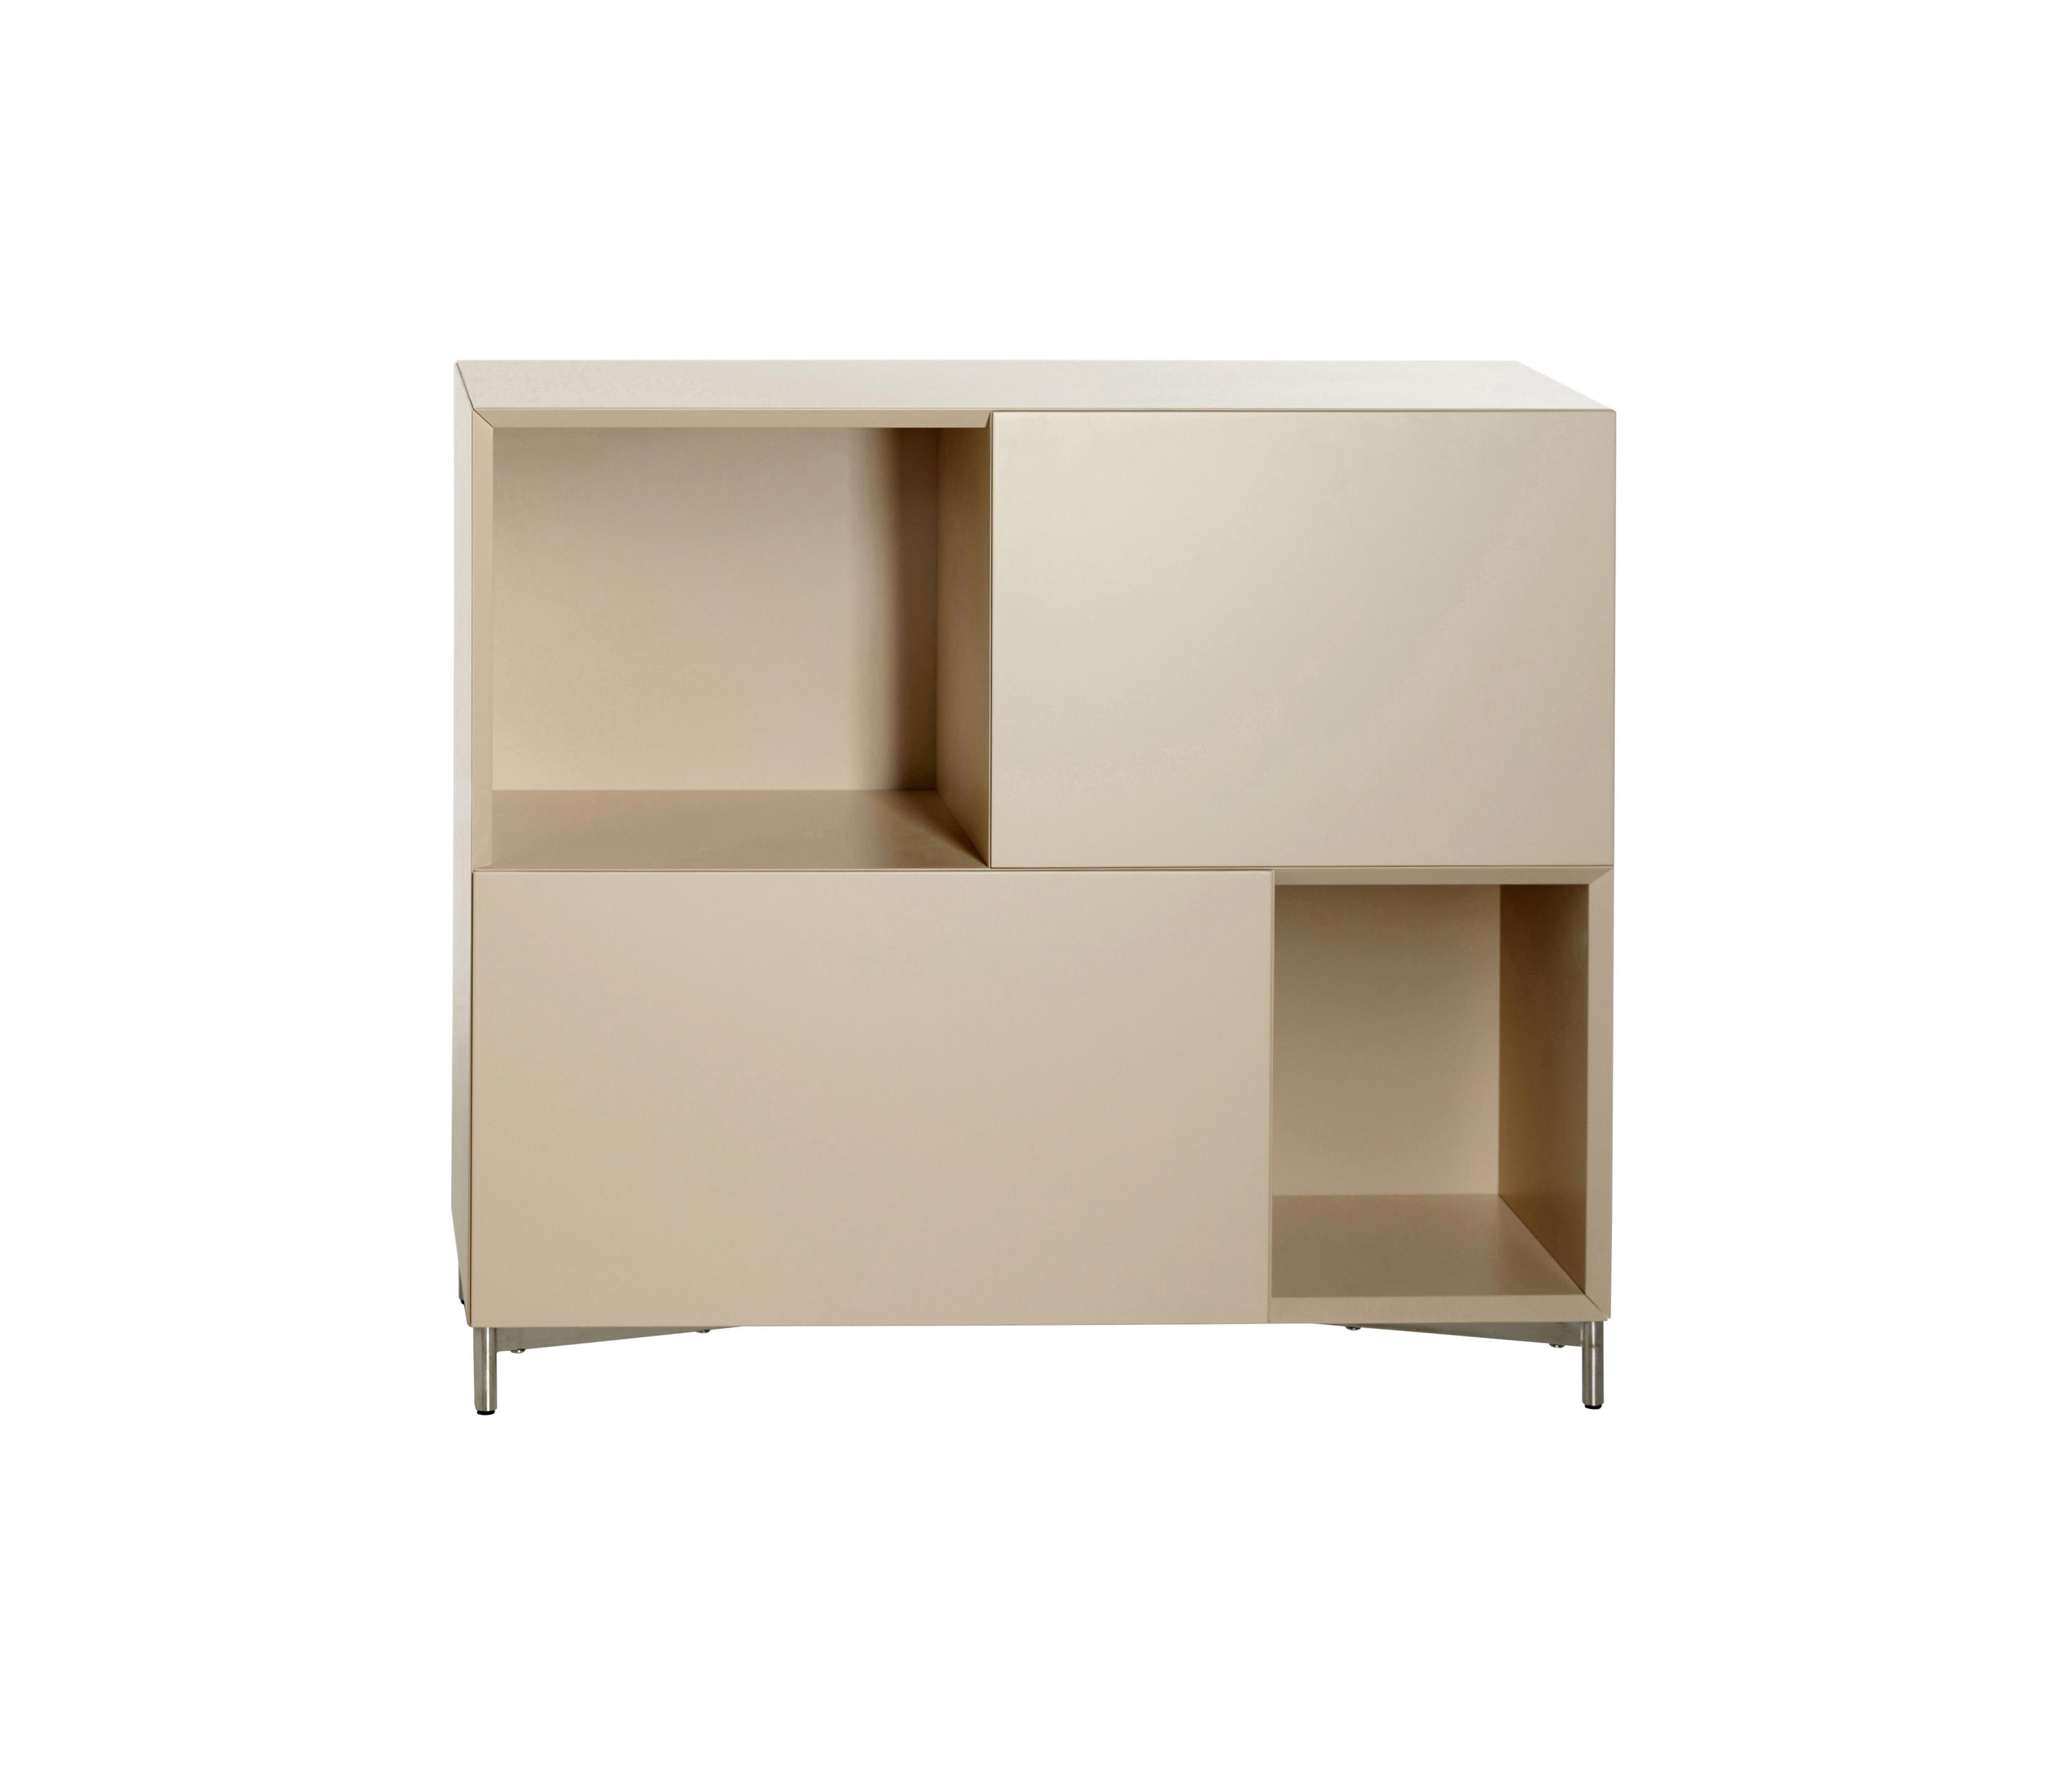 Ad Box 024/mb – Sideboards / Kommoden Von Potocco | Architonic Throughout Current Phyllis Sideboards (View 20 of 20)